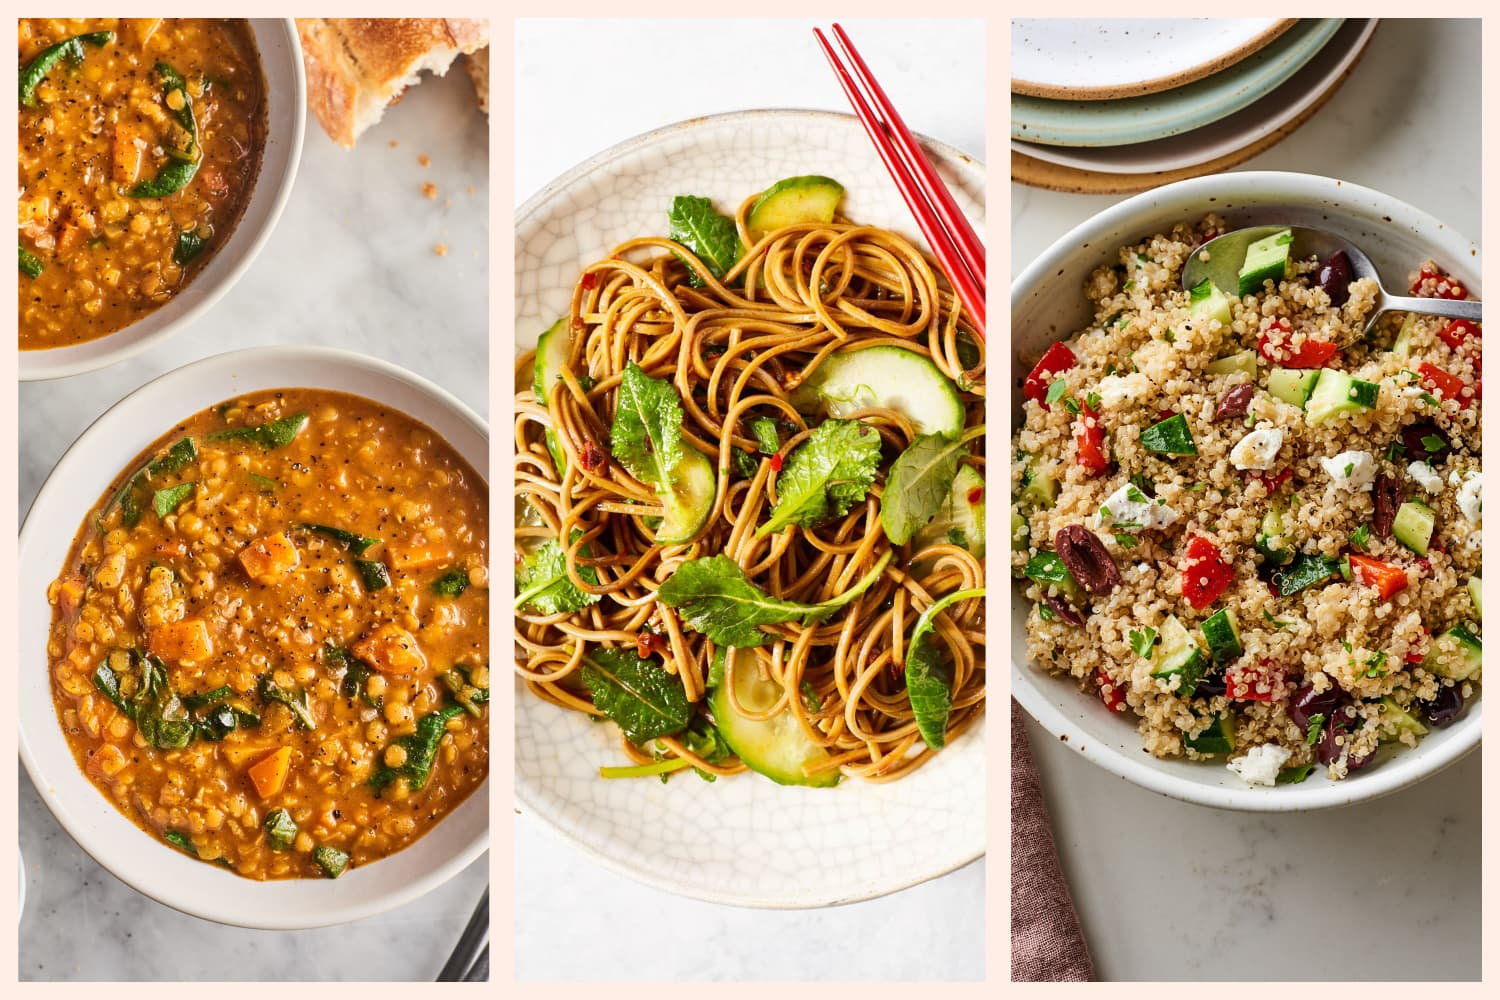 3 Make-Ahead Lunches You'll Actually Want to Eat